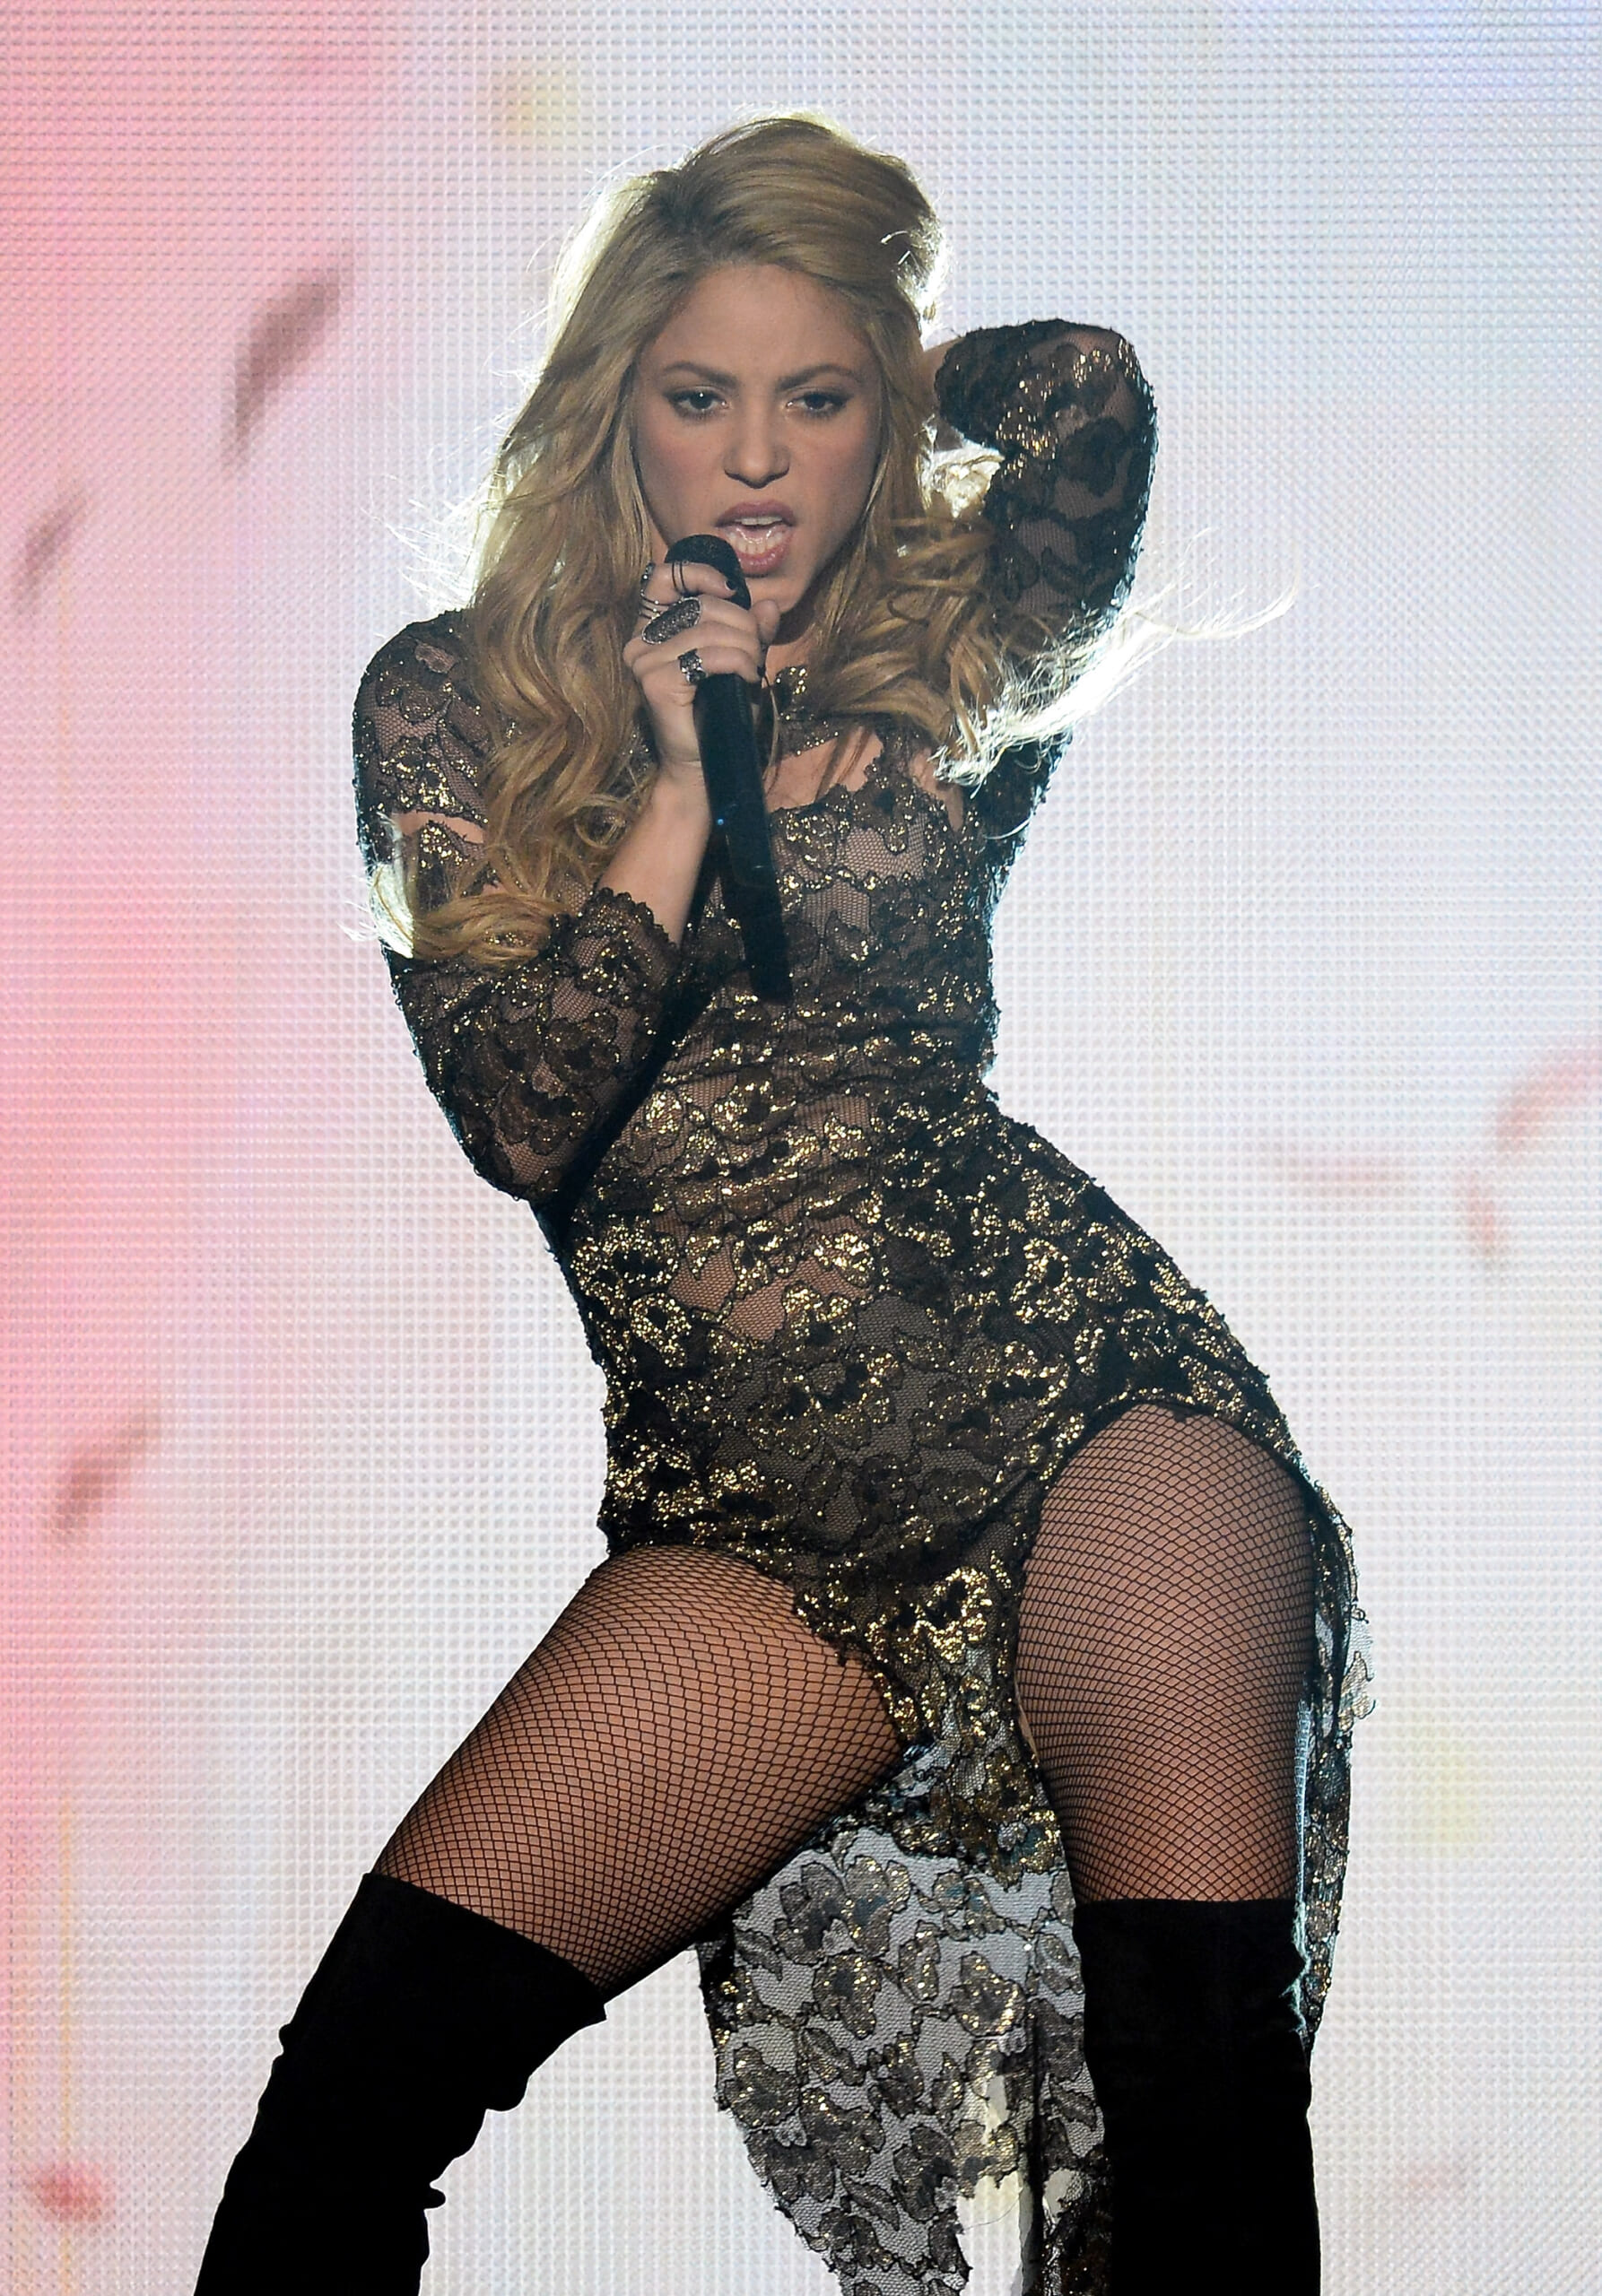 Shakira performs during the 2014 Billboard Music Awards at the MGM Grand Garden Arena on May 18, 2014 in Las Vegas, Nevada. (Photo by Ethan Miller/Getty Images)